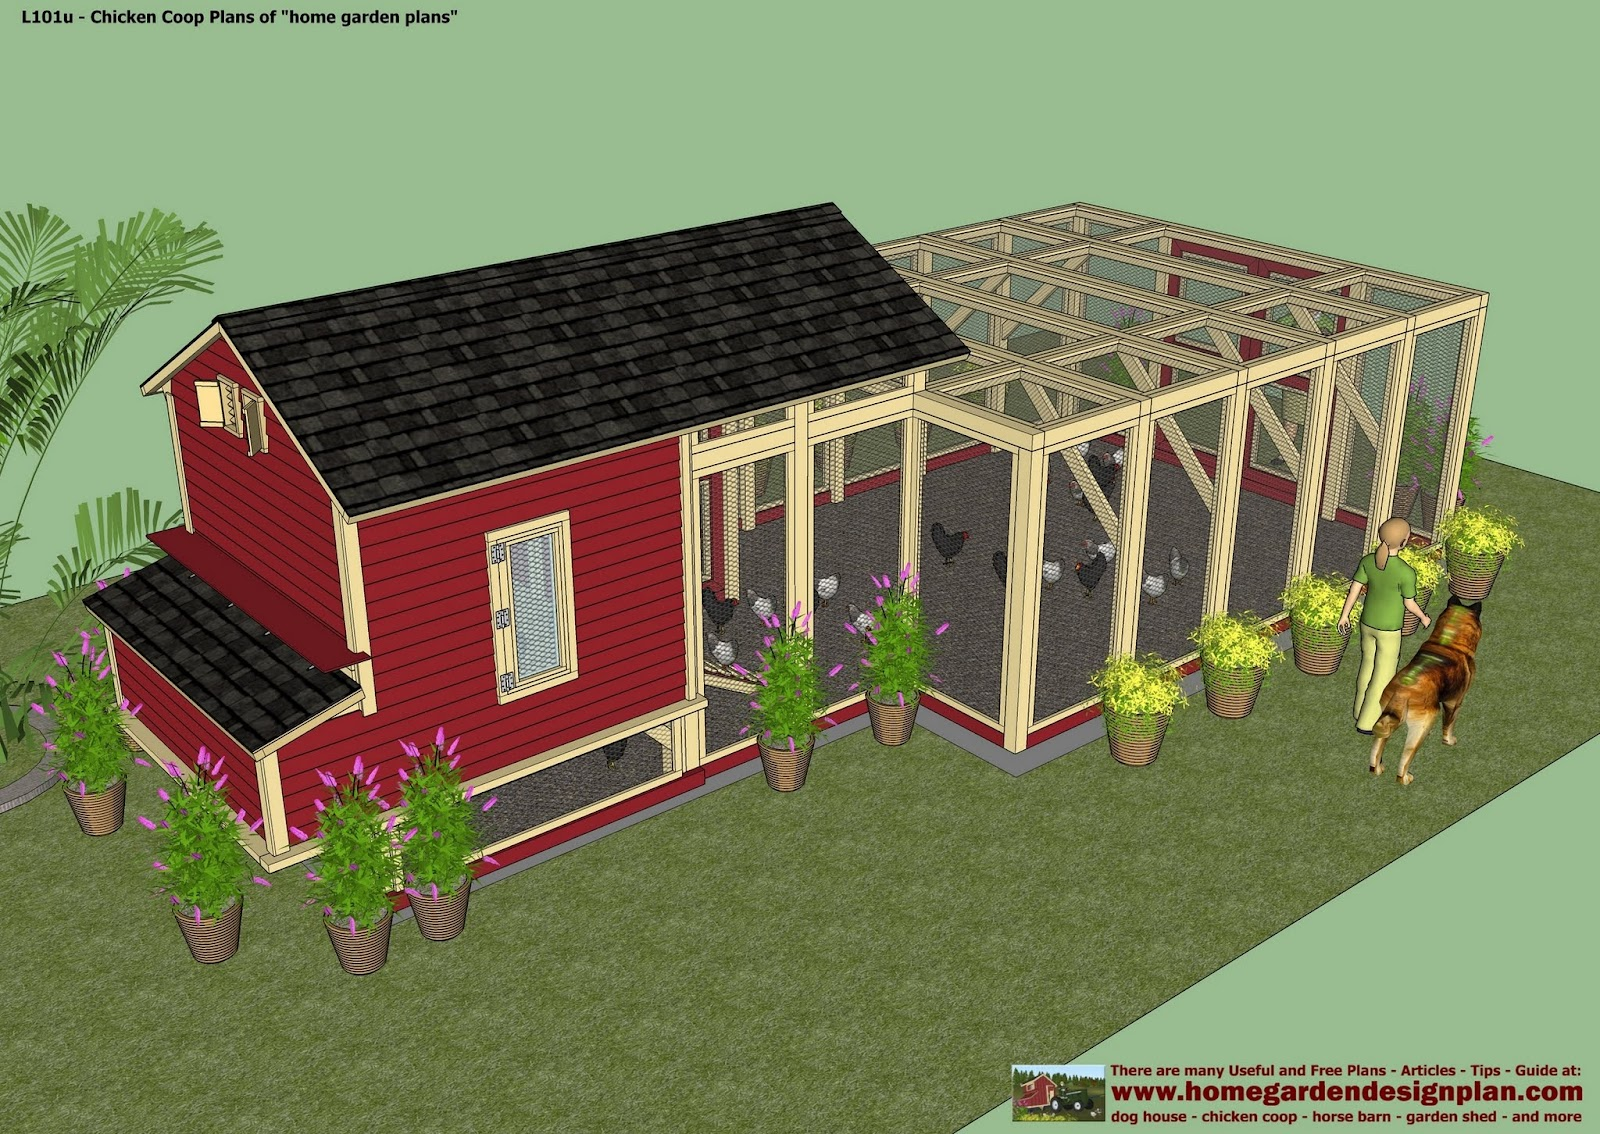 home garden plans l101 chicken coop plans construction chicken coop design how to build